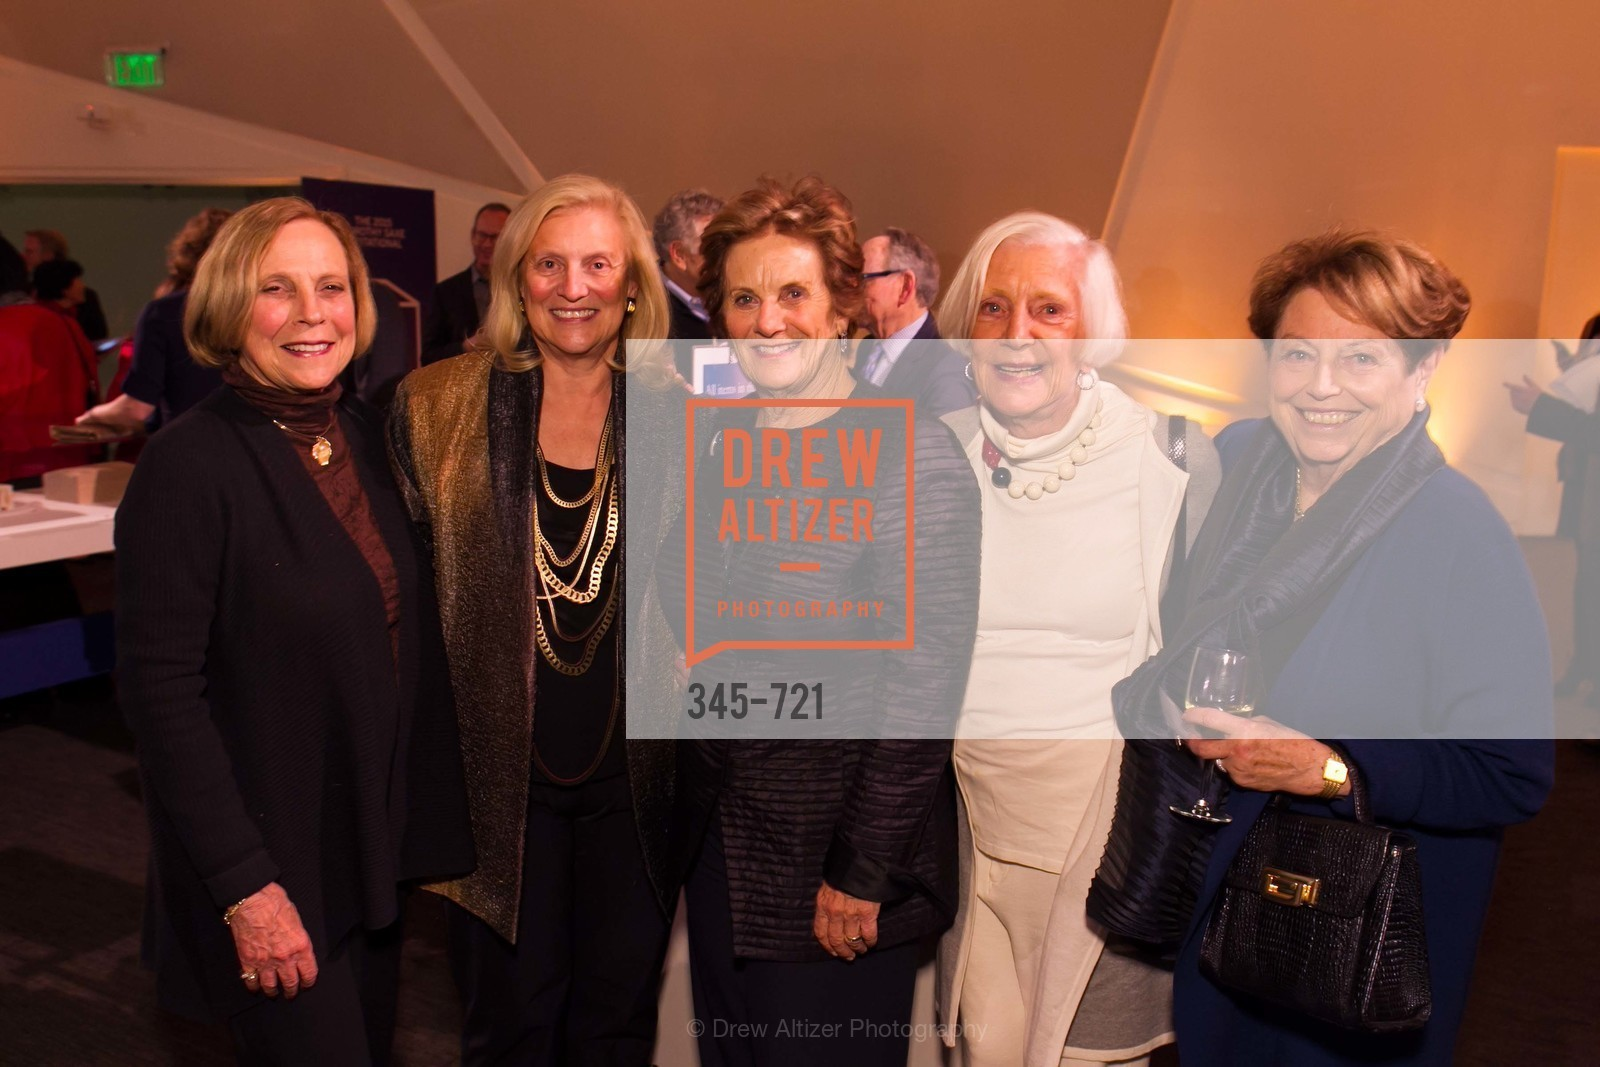 Sarah Lee Newman, Susan Hyatt, Carolyn Waldman, Sally Gradinger, Frances Berger, The 2015 Dorothy Saxe Invitational Celebration at the JEWISH MUSEUM, US, May 12th, 2015,Drew Altizer, Drew Altizer Photography, full-service agency, private events, San Francisco photographer, photographer california